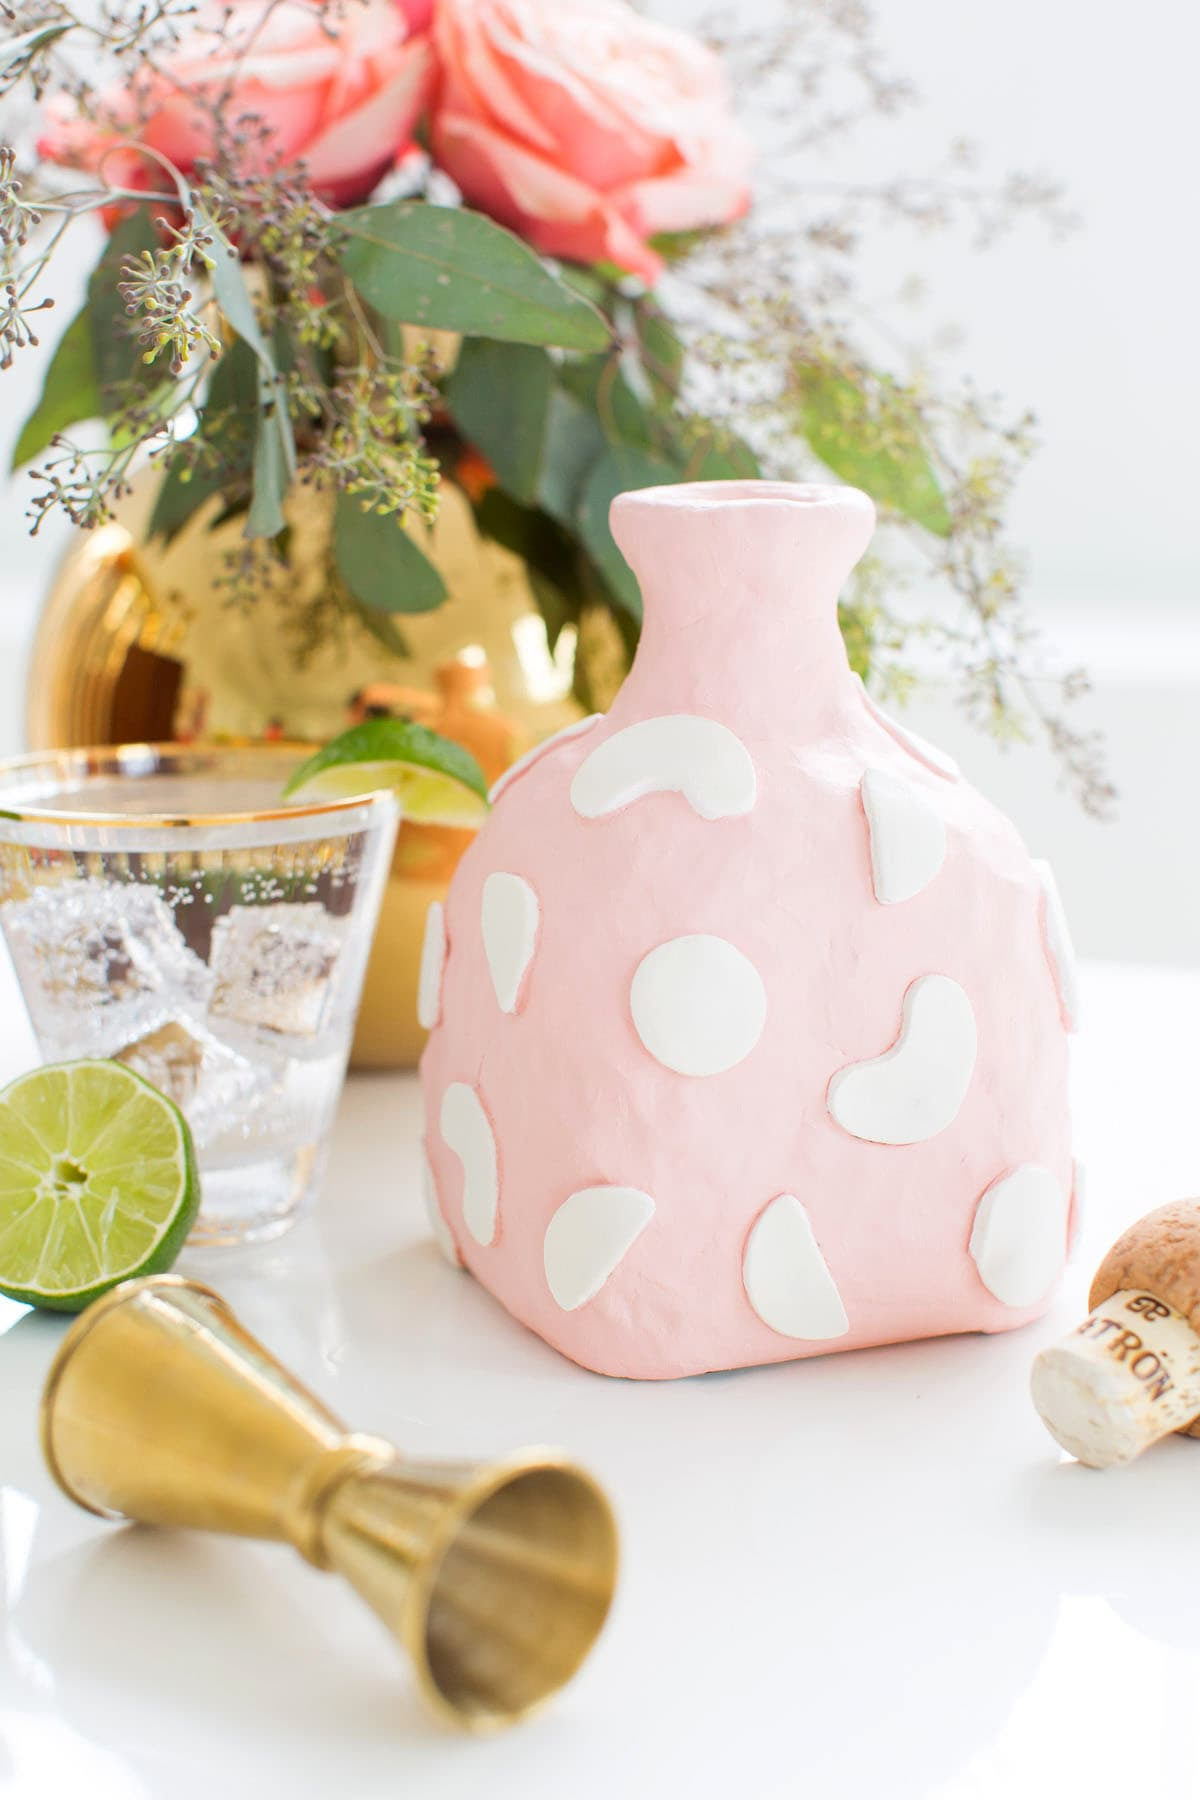 A cute statement DIY clay decanter made from an old Patron bottle! - sugar and cloth - Best DIY blog 2015 - houston - ashley rose